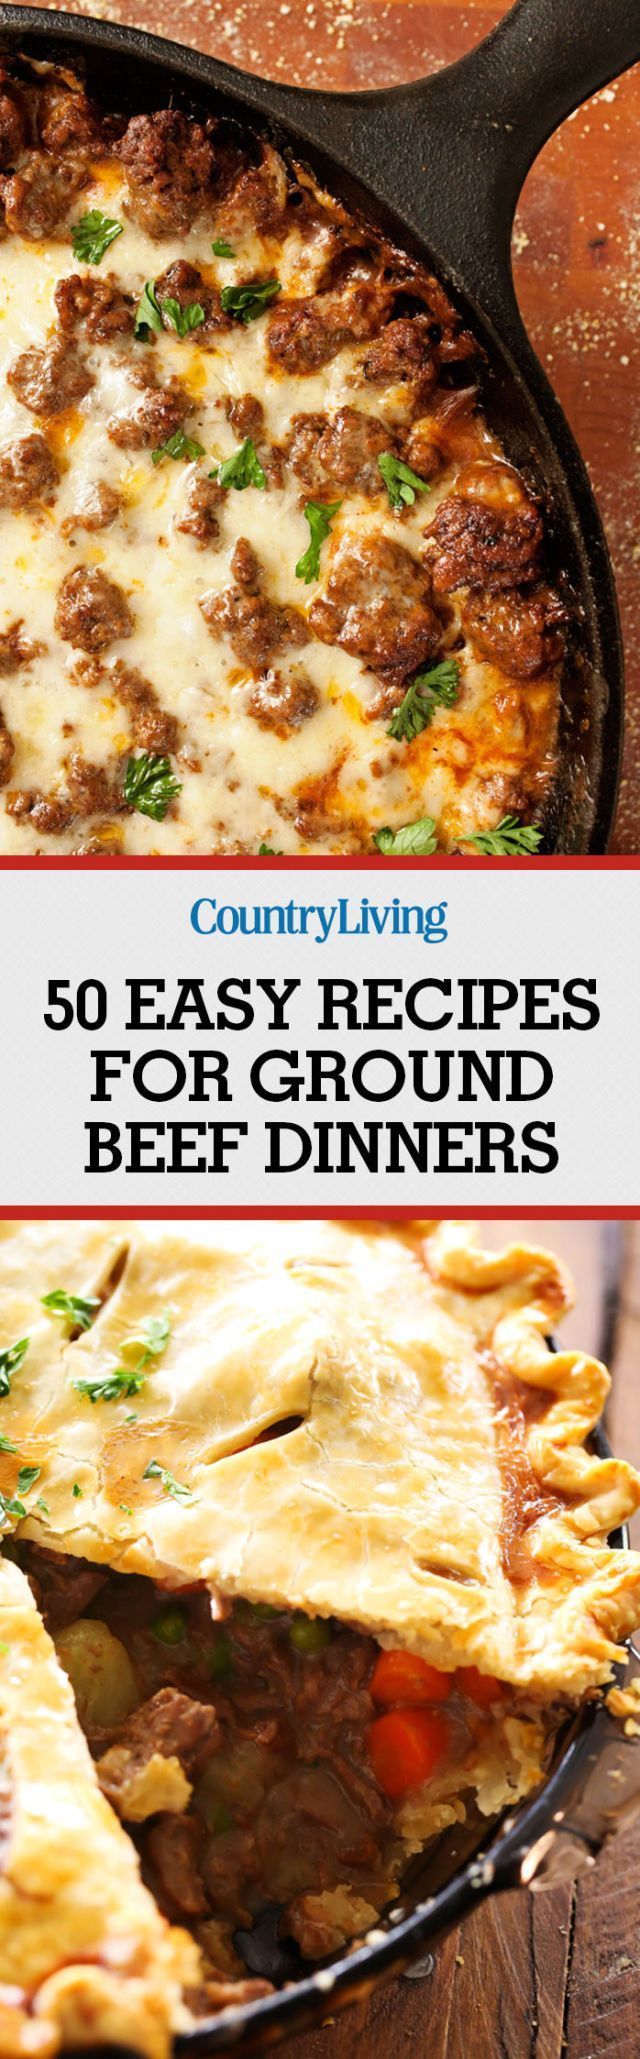 Best 20 ground beef recipes ideas on pinterest for Quick meals to make with ground beef